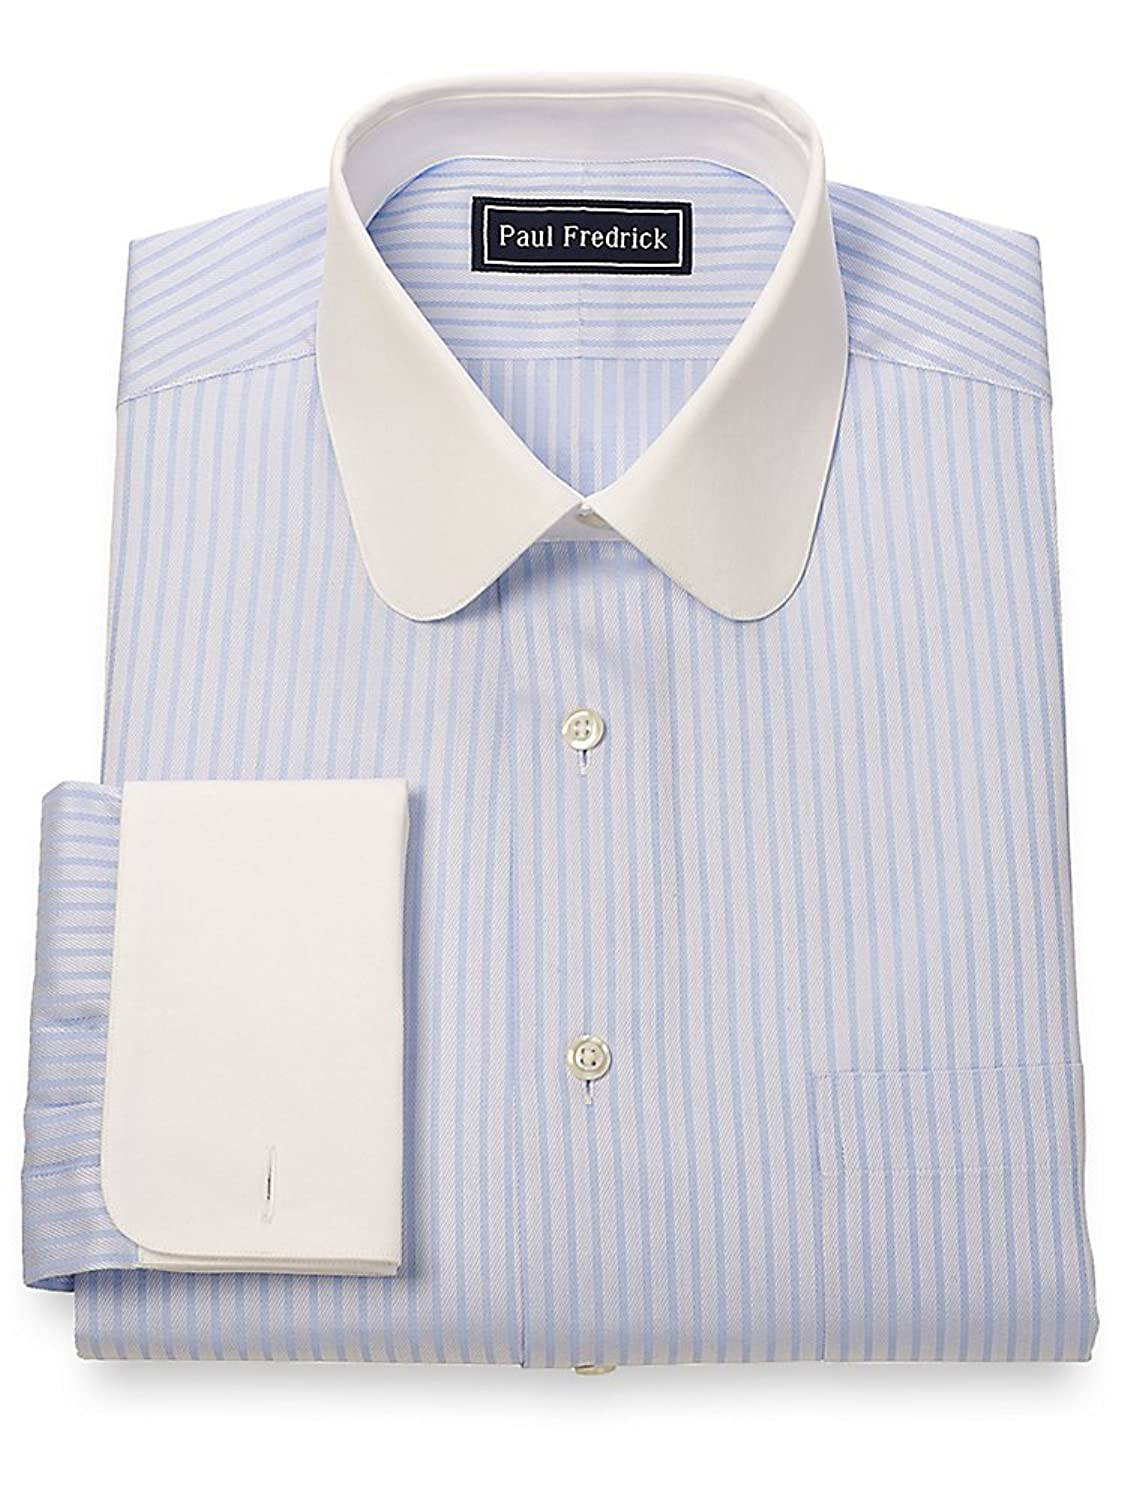 DressinGreatGatsbyClothesforMen Cotton Club Collar French Cuff Dress Shirt $64.95 AT vintagedancer.com